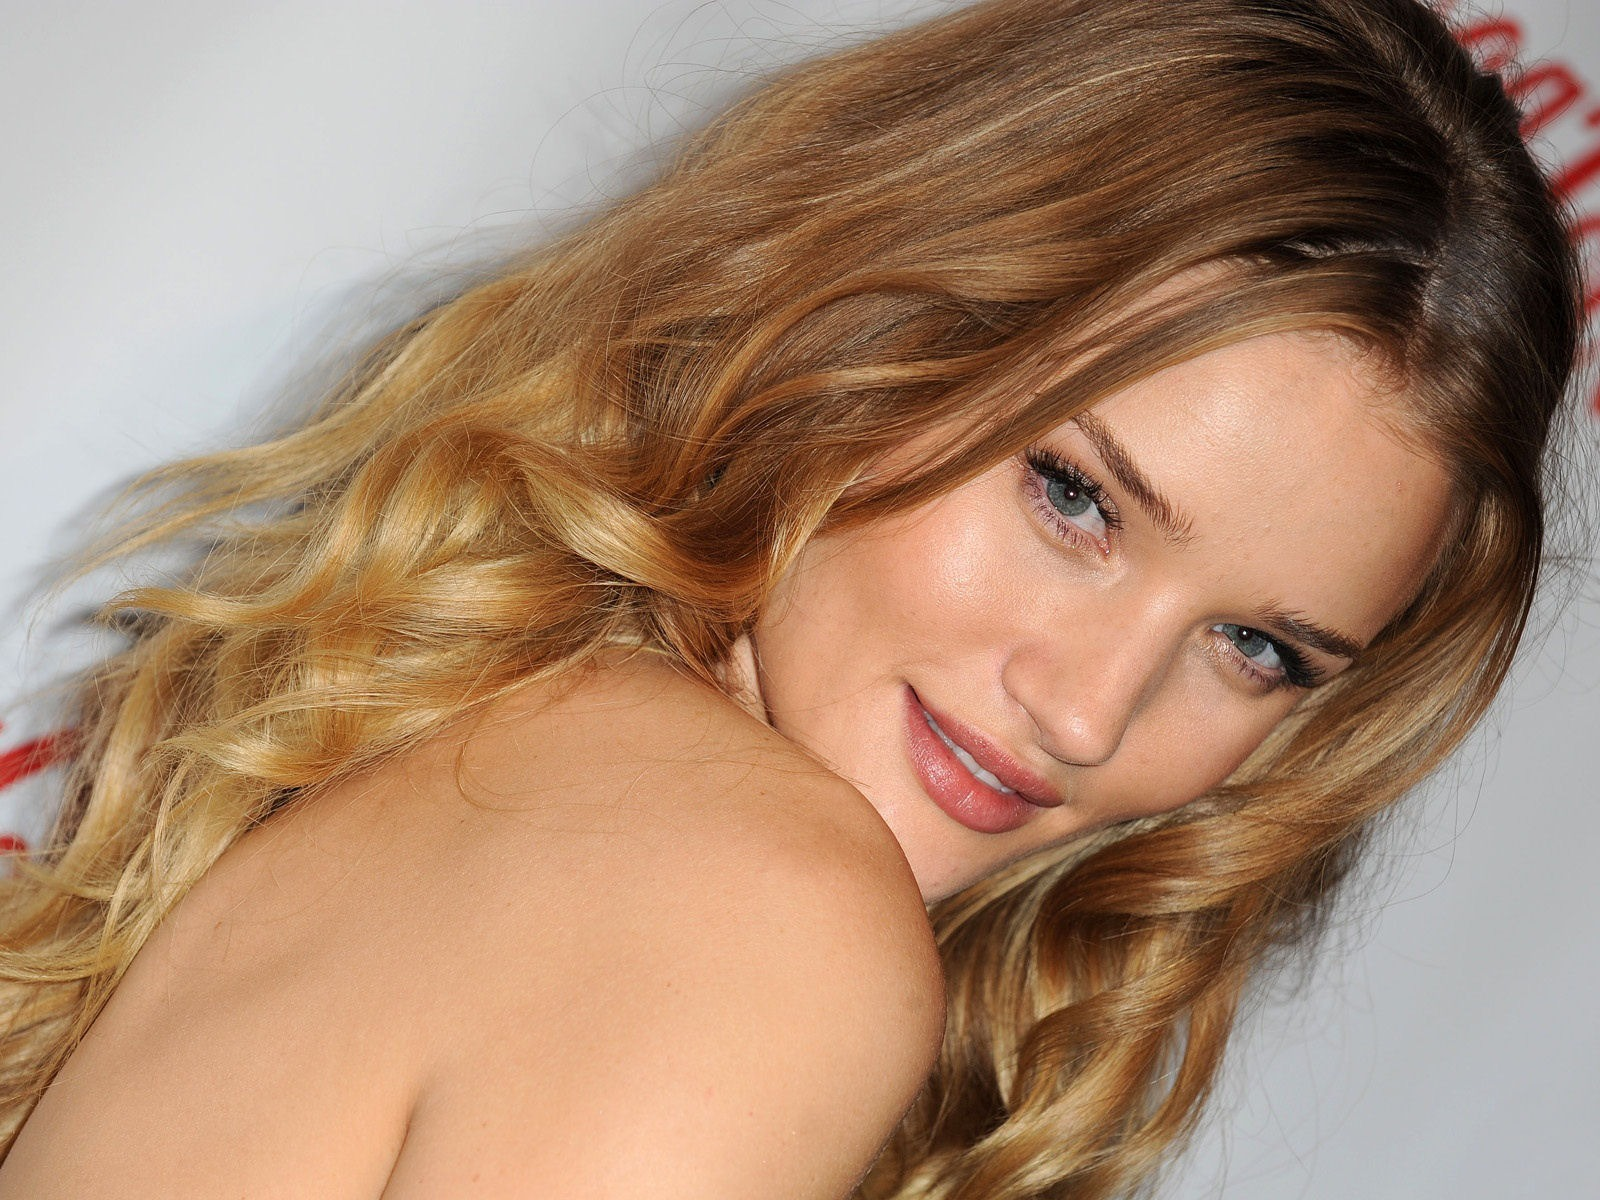 Rosie Huntington Whiteley #011 - 1600x1200 Wallpapers Pictures Photos Images